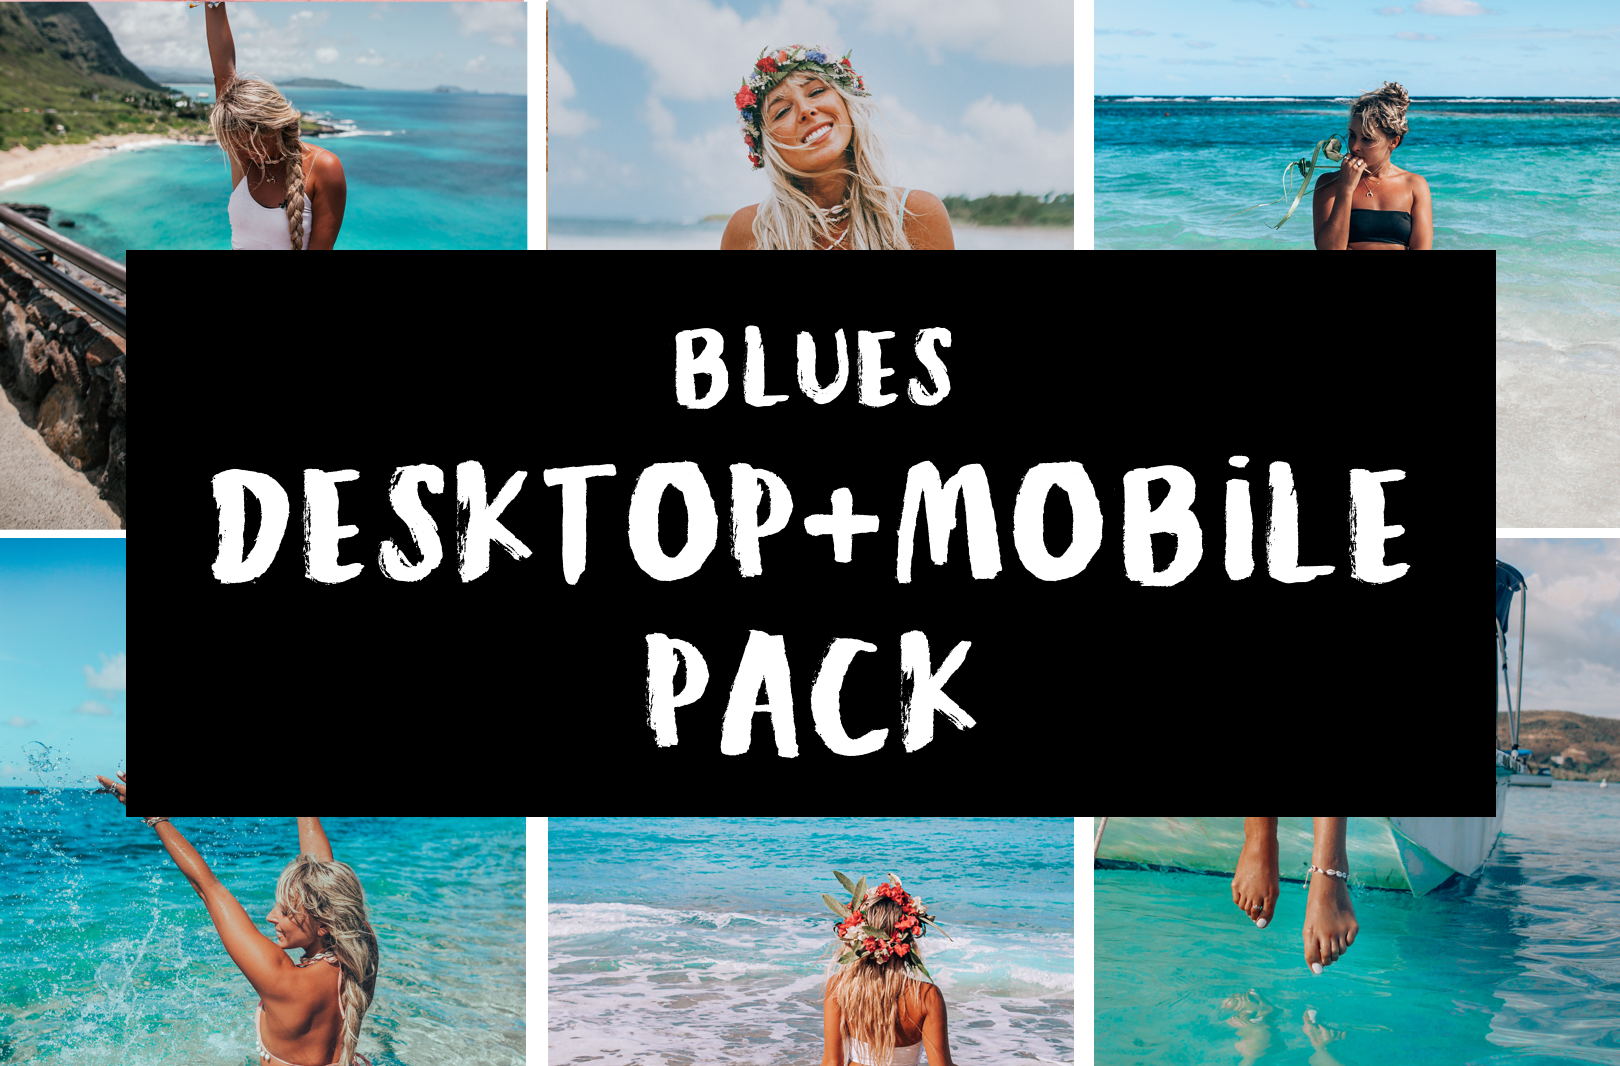 Tropical Blues DESKTOP Pack: RAW photos